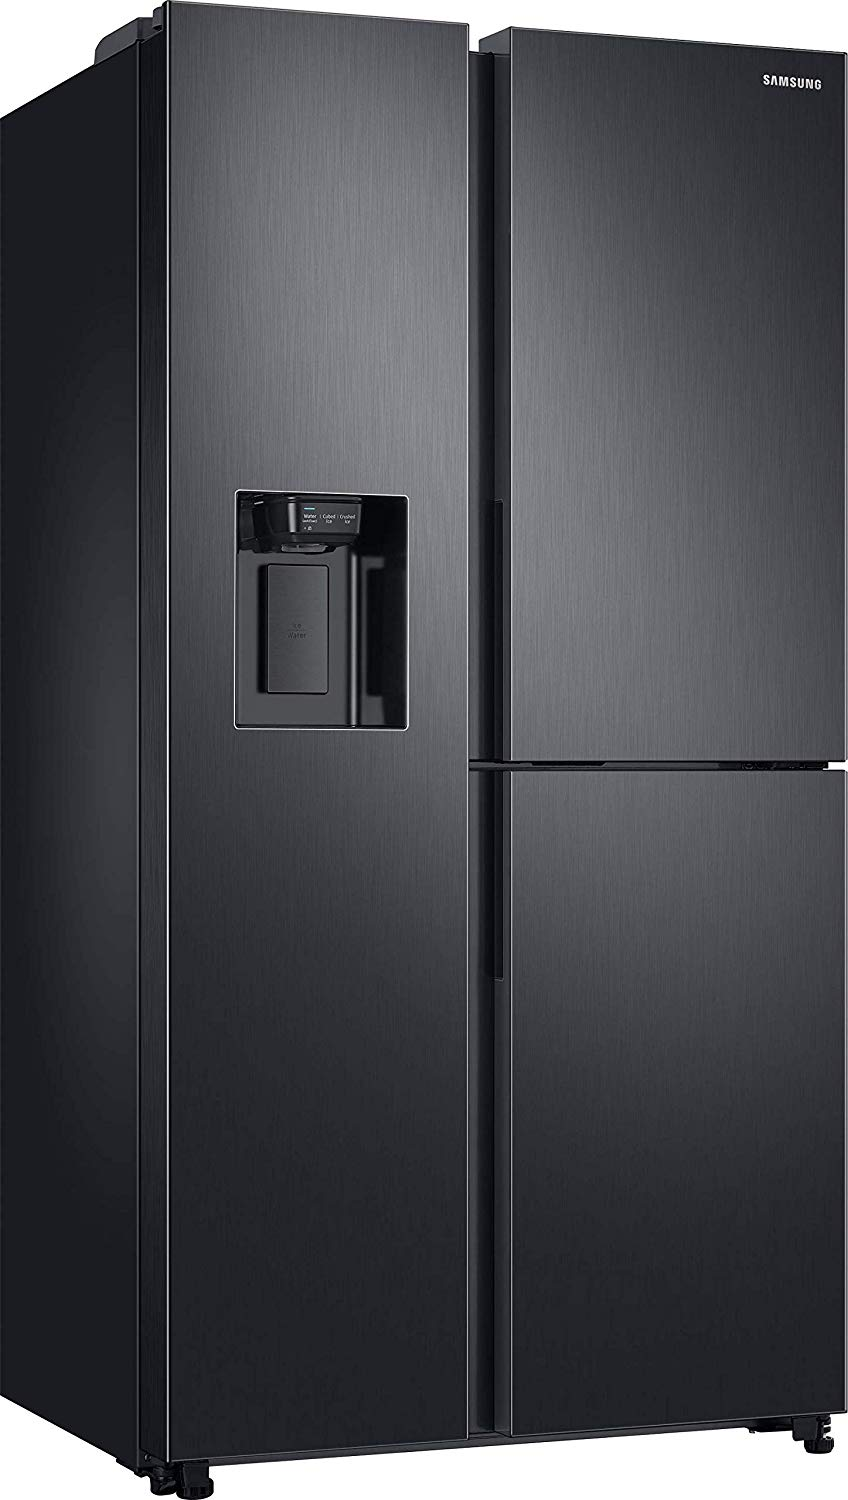 Samsung Side By Side Refrigerator Eg 3 Door A 604 L No Frost Toptest Vergleiche Com Compare The Test Winners Test Compare Offers Bestsellers Buy Product 2020 At Low Prices